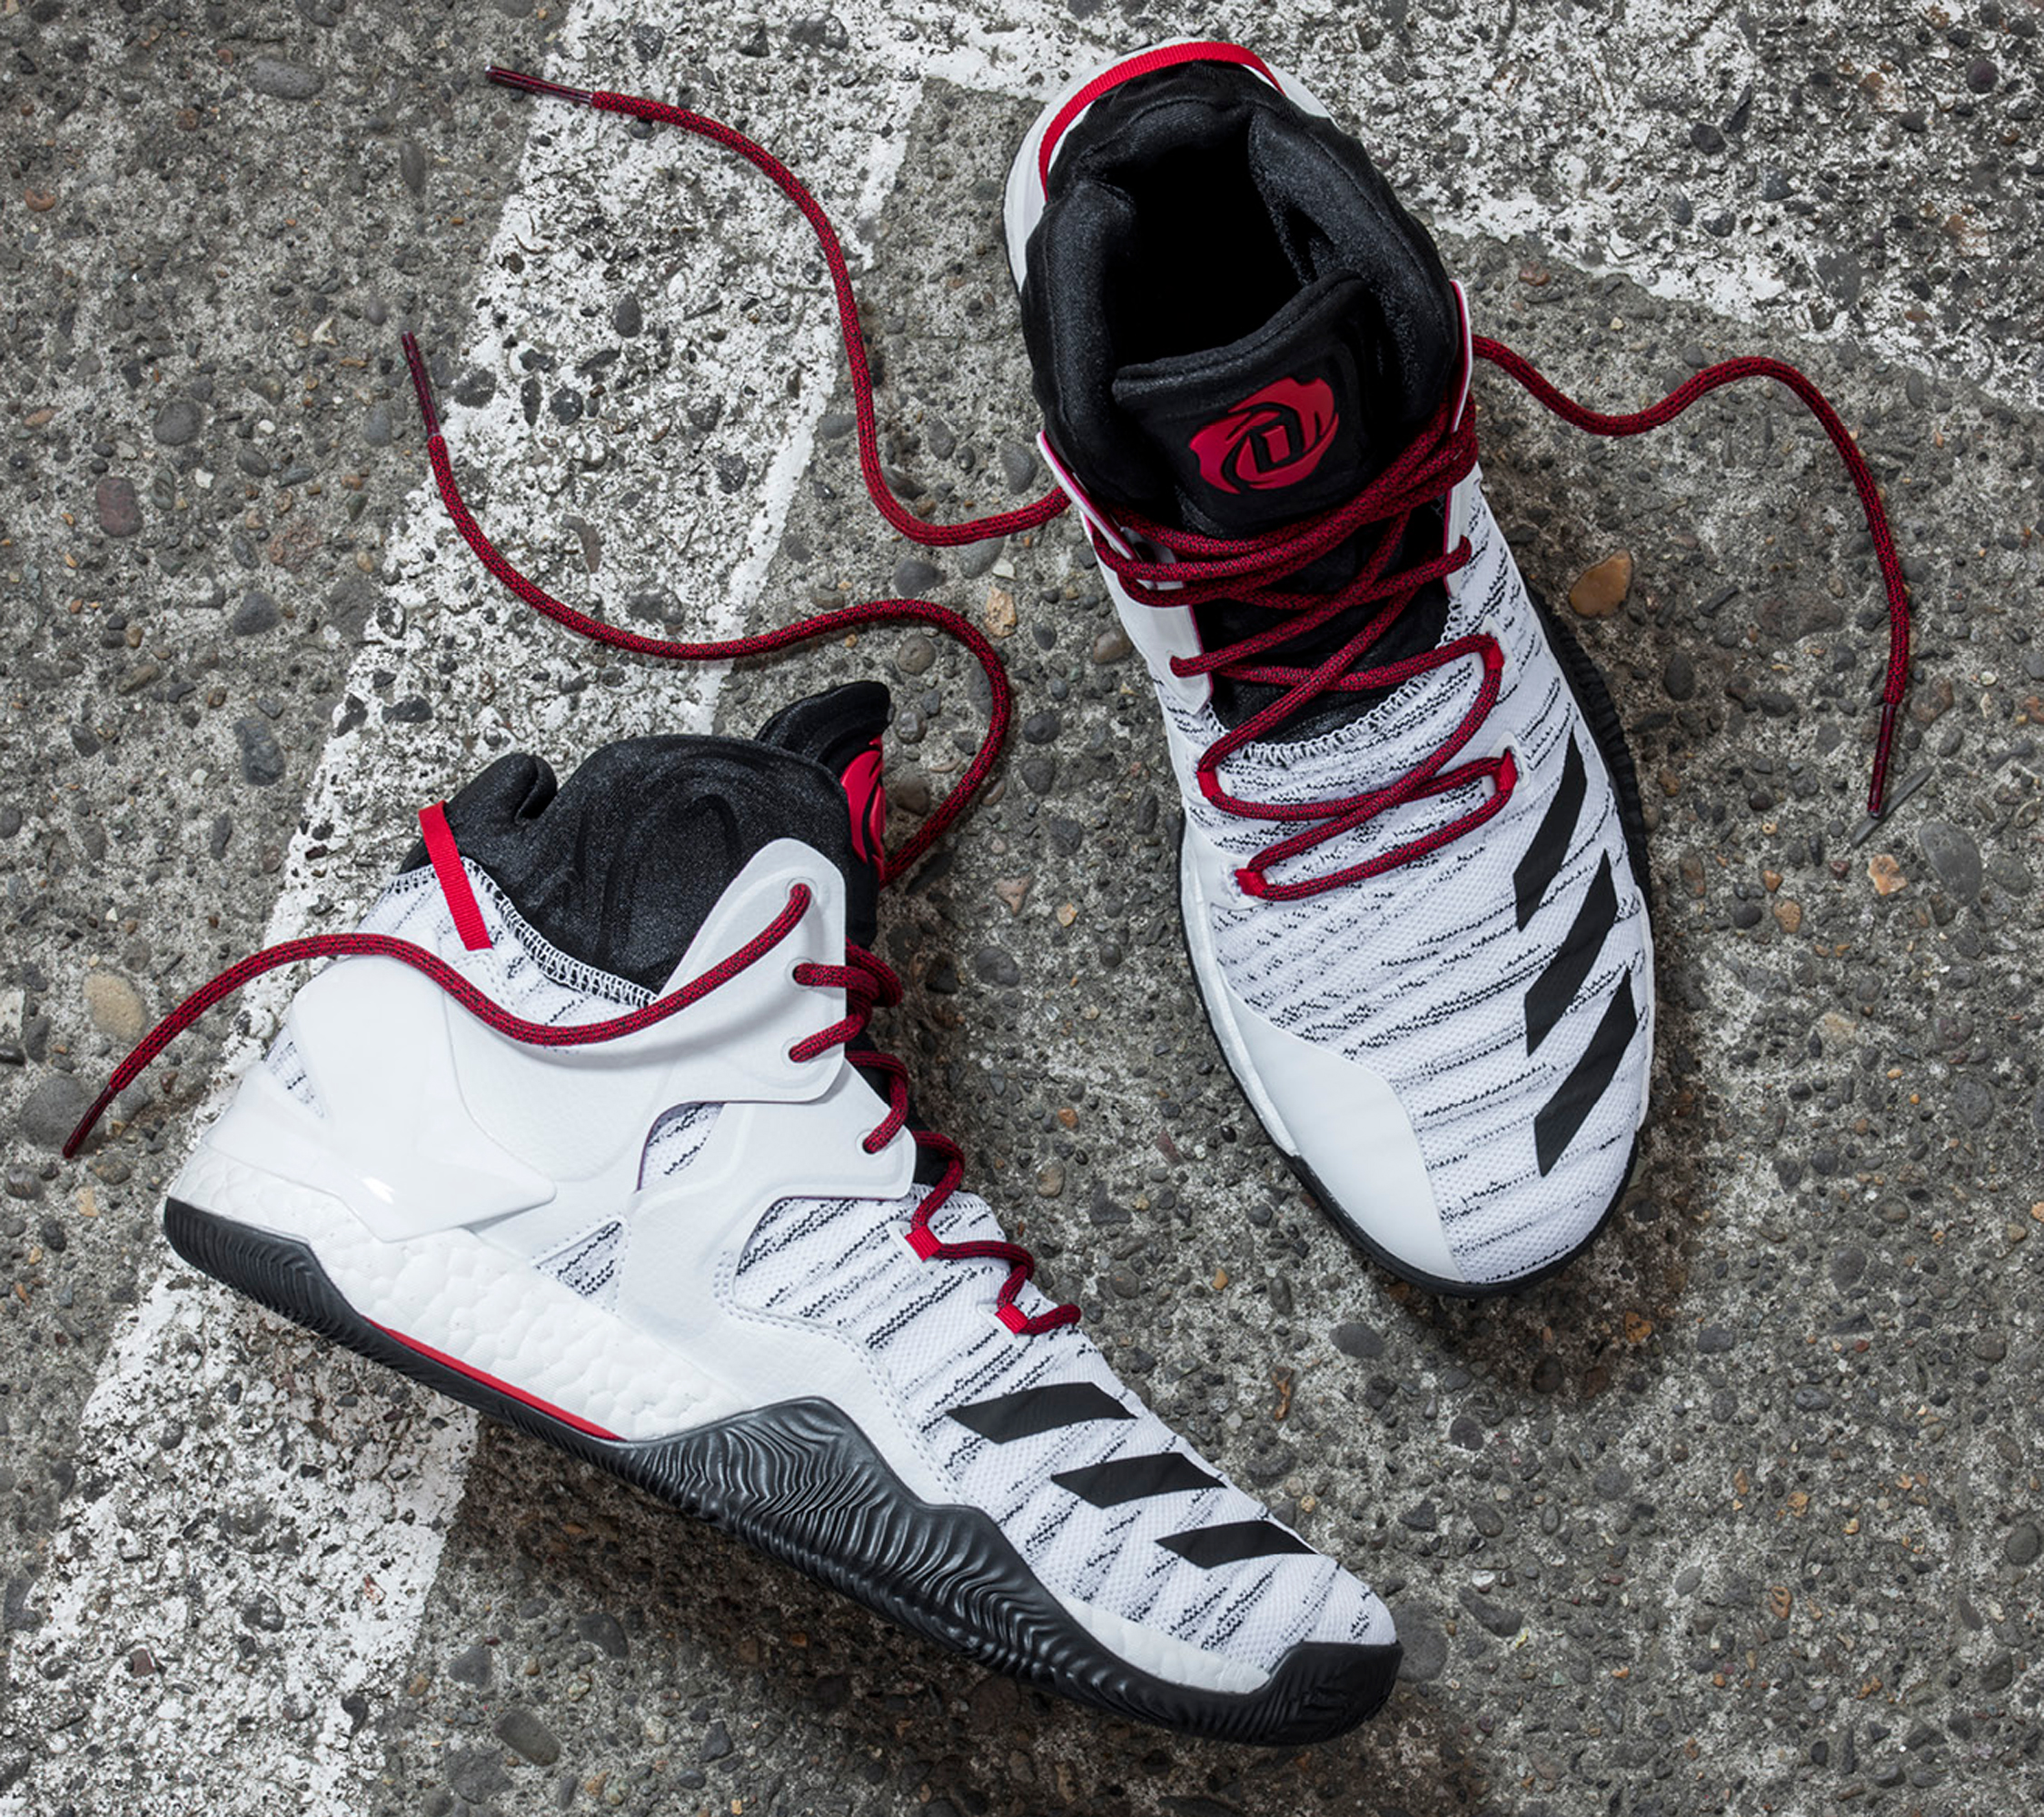 Derrick Rose was dubbed the face of the adidas signature basketball line but injuries have derailed him from tapping into his full potential. Three Stripes has remained loyal to one of its most lucrative stars, and the D Rose 7 follows along with the Crazylight Boost in regards to tech. Price — $160